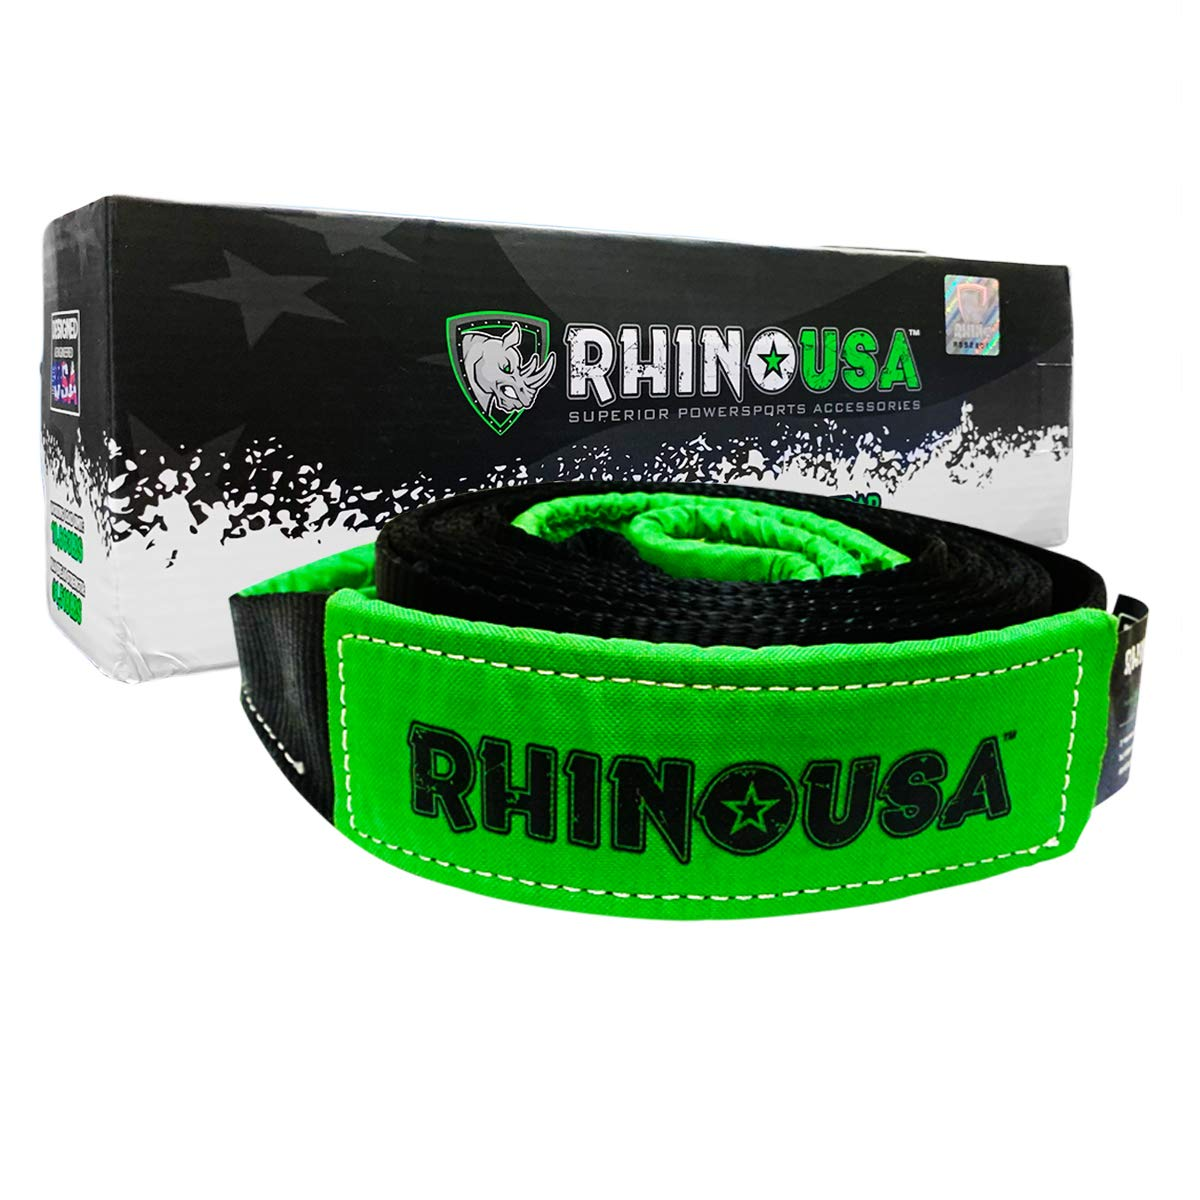 Rhino USA Tree Saver Winch Strap 3 inch x 8 Foot - Lab Tested 31,518lb Break Strength - Triple Reinforced Loop End to Ensure Peace of Mind - Emergency Off Road Recovery Tow Rope - Unlimited Warranty! by Rhino USA